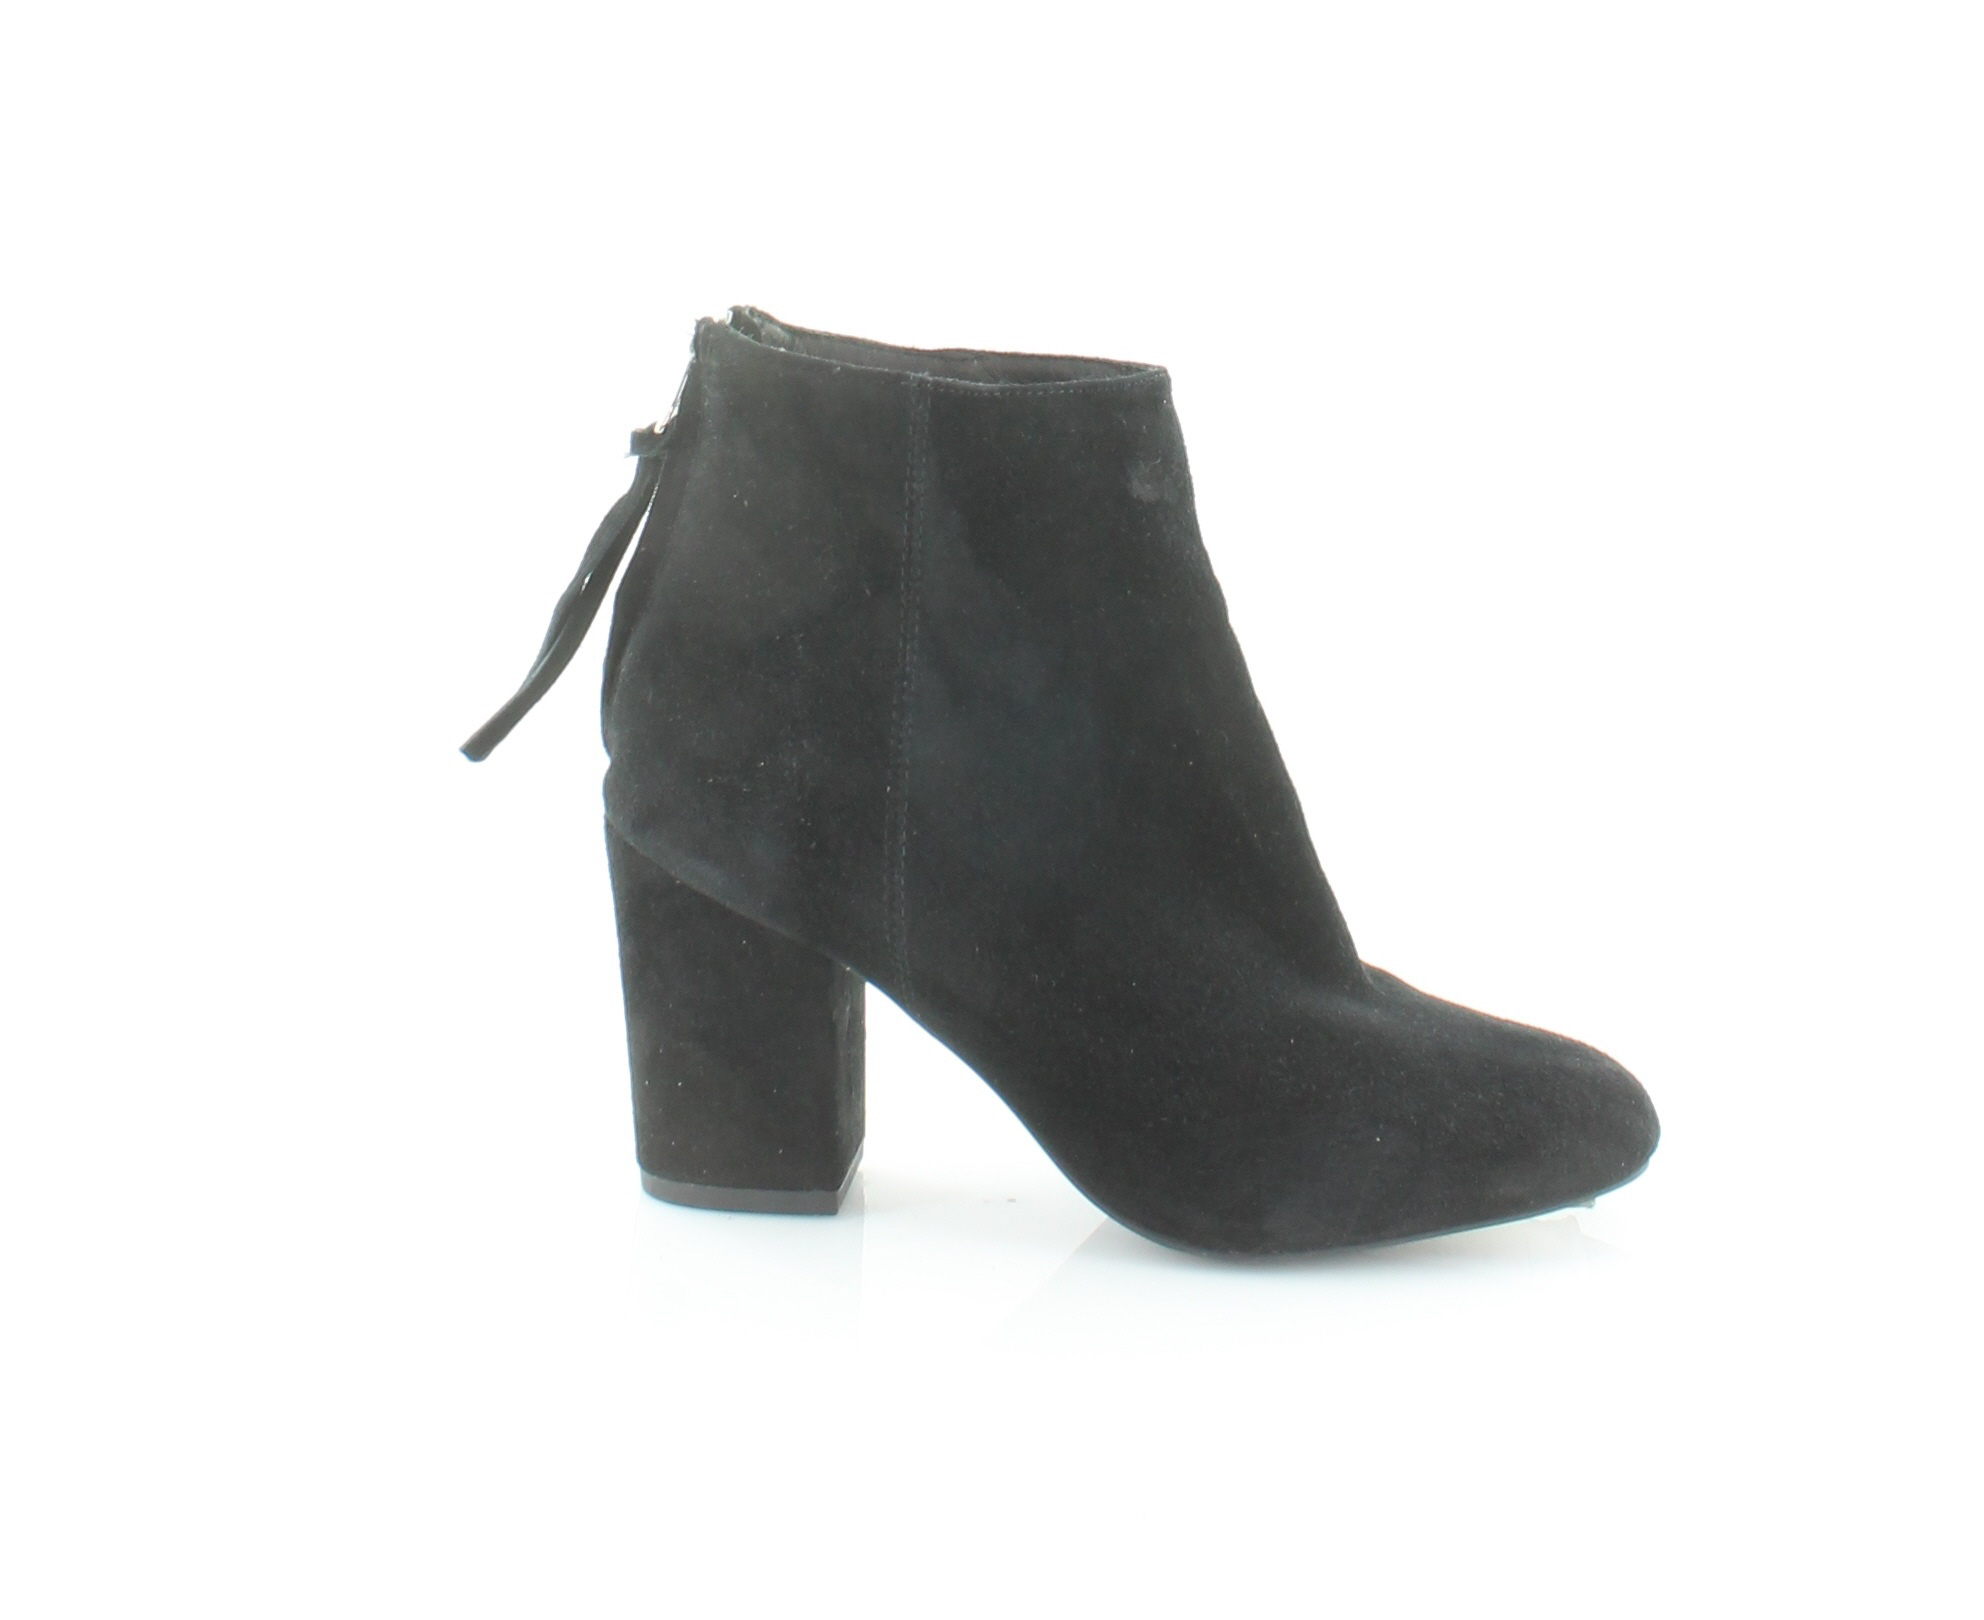 7c01d3731ae Steve Madden Cynthia Black Womens Shoes Size 5.5 M Boots MSRP  129 ...